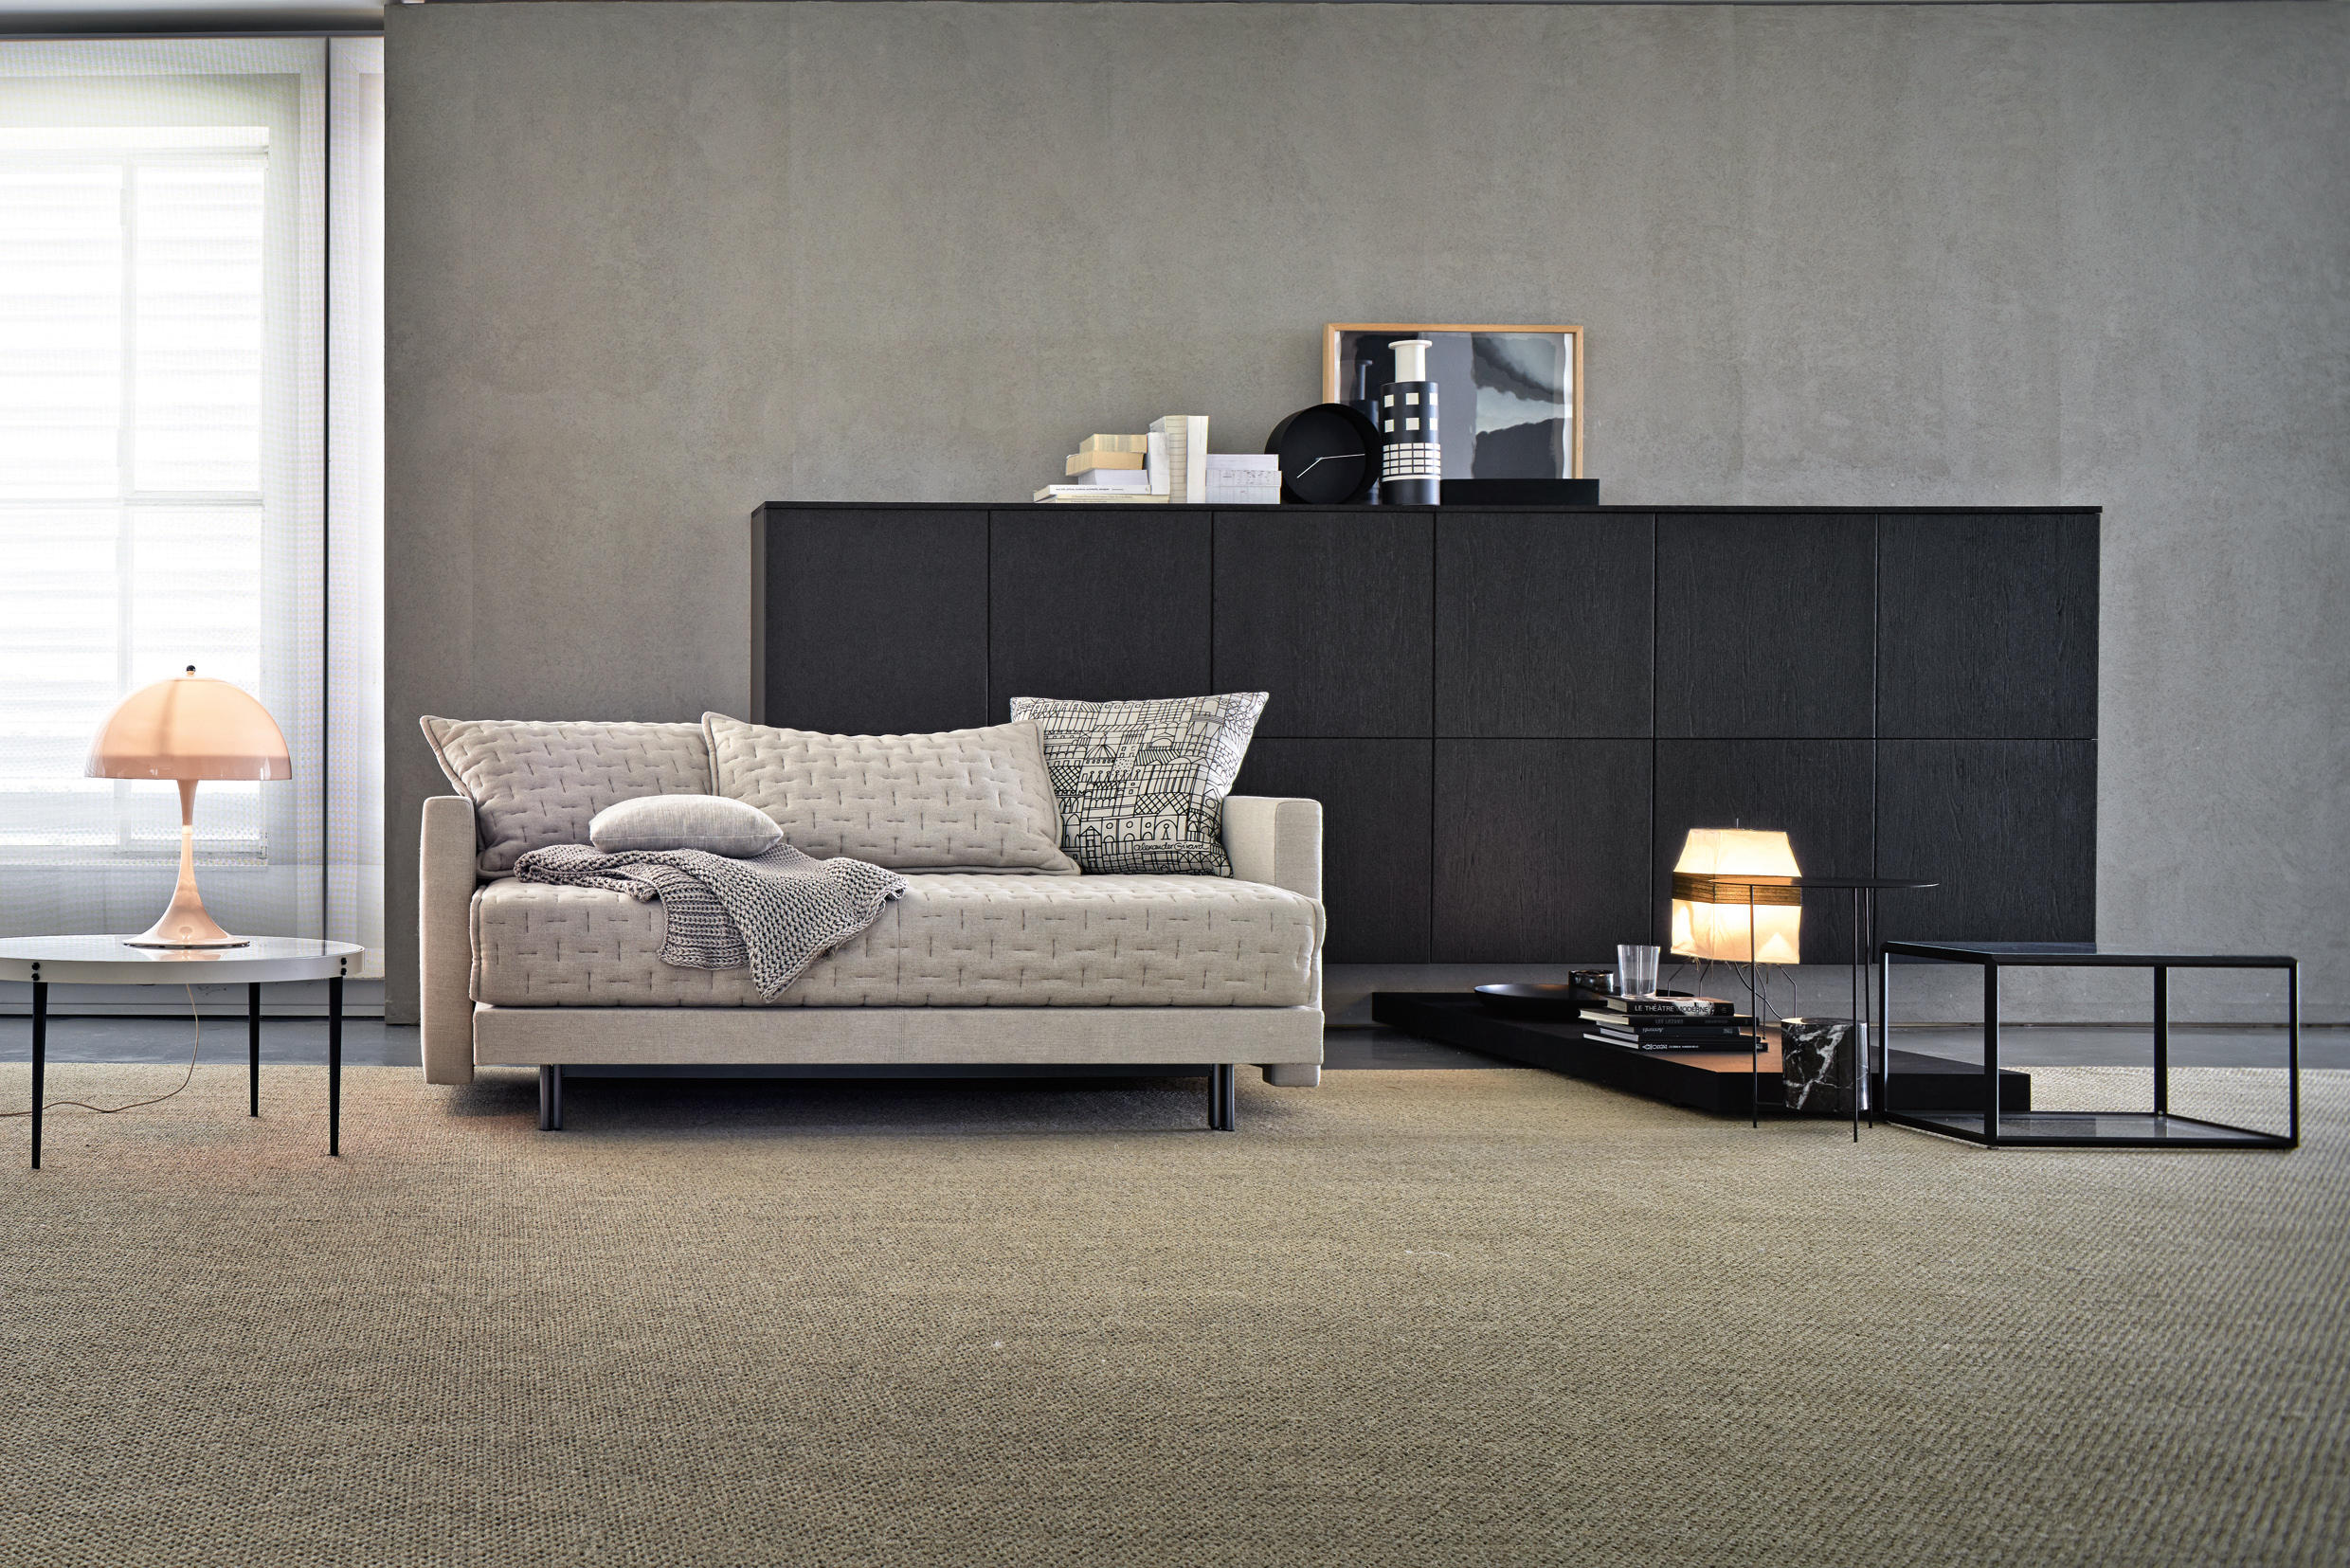 Oz Sofa Beds From Molteni Amp C Architonic